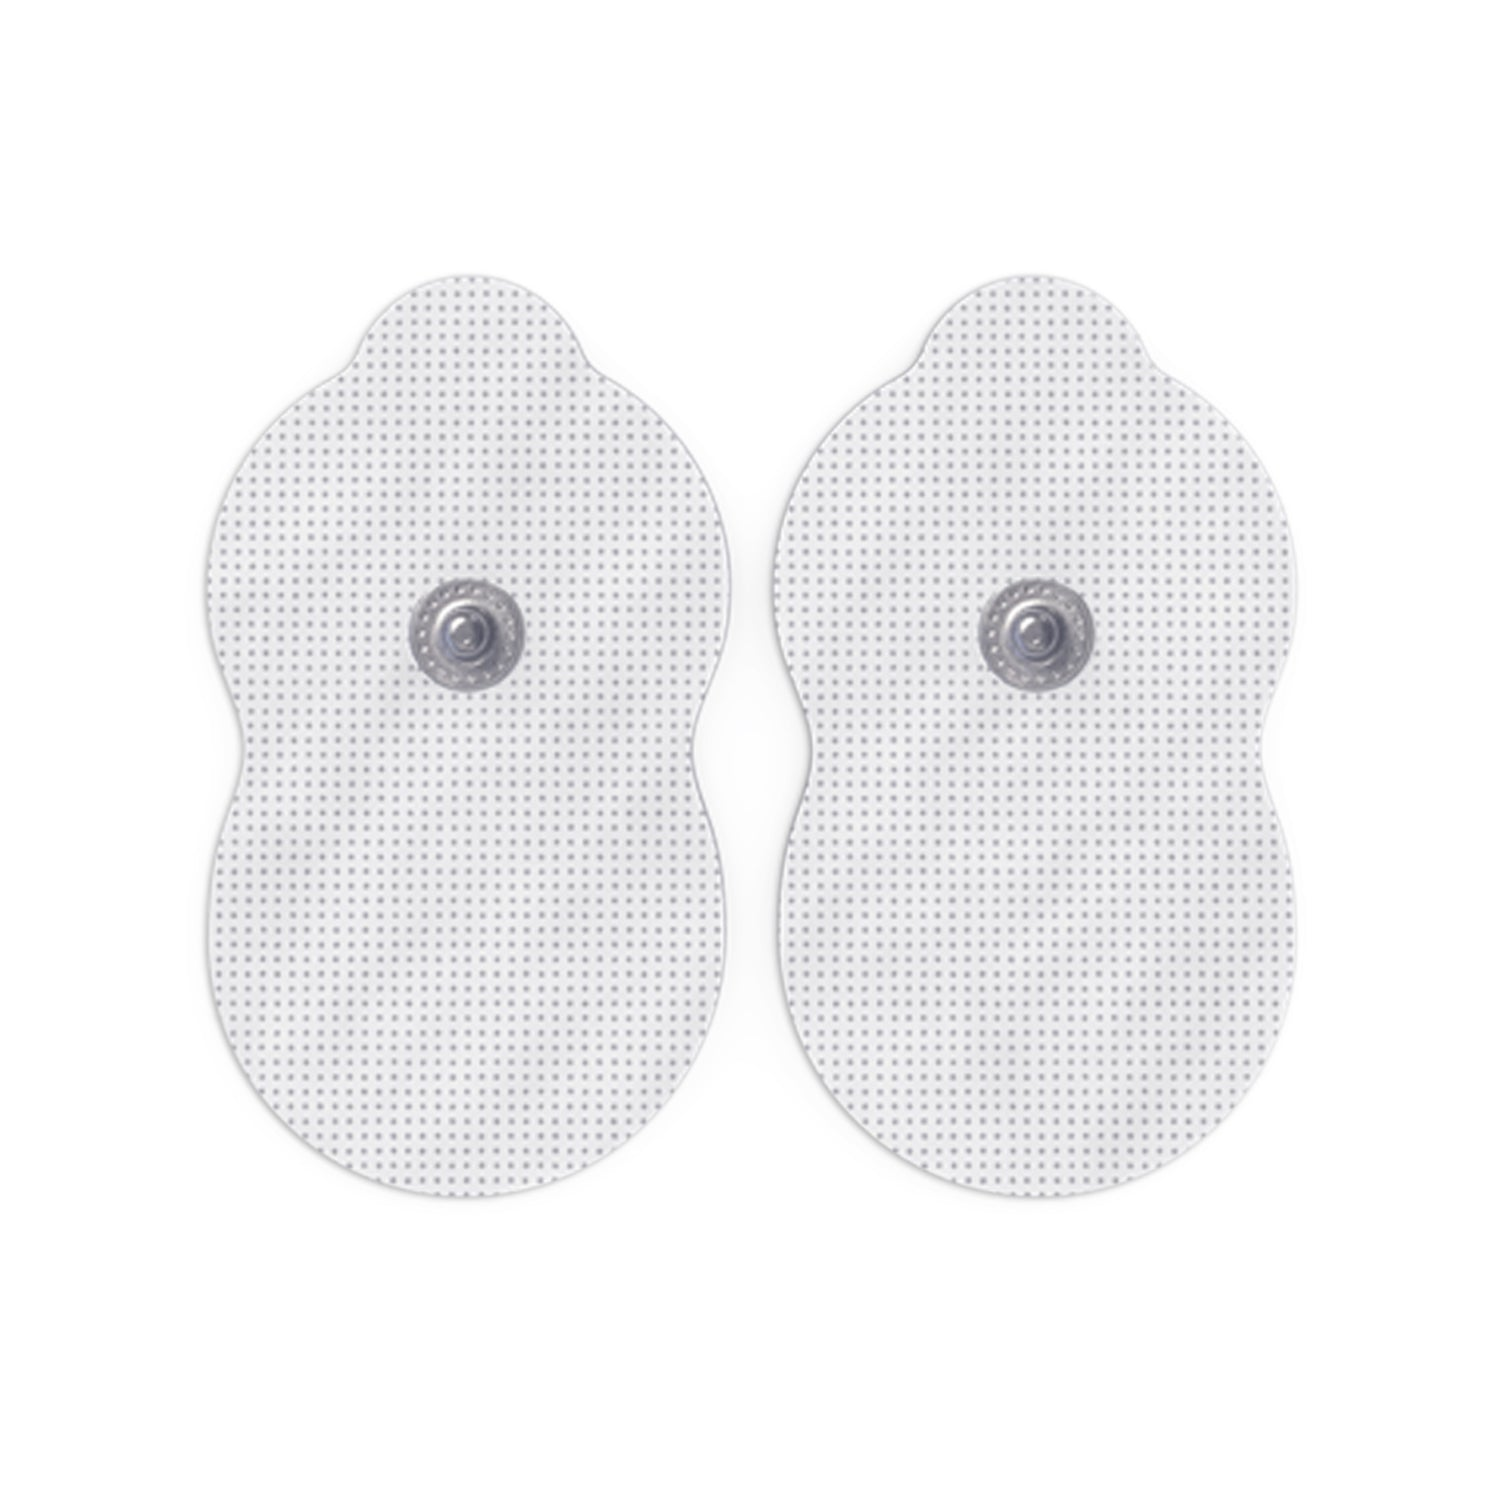 10 Pairs (20Pcs) White Pair of Snap-On Large Gourd-Shaped Electrode Patches Pads - HealthmateForever